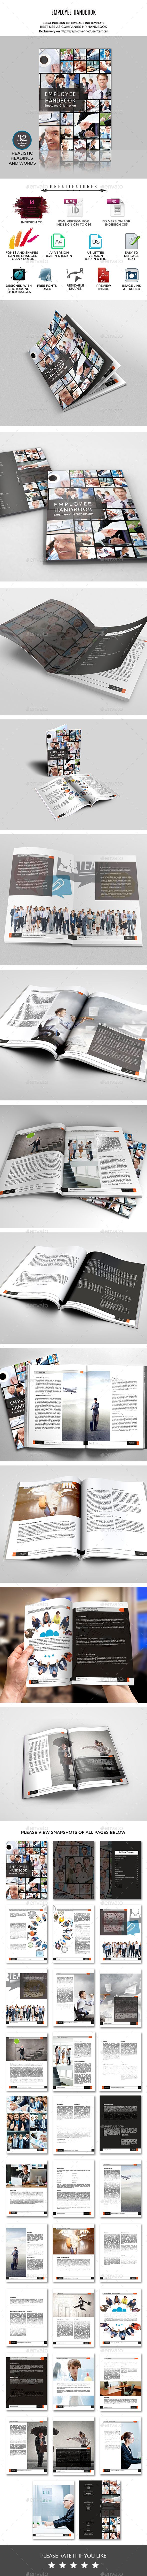 Pin by Best Graphic Design on Brochure Templates | Pinterest ...